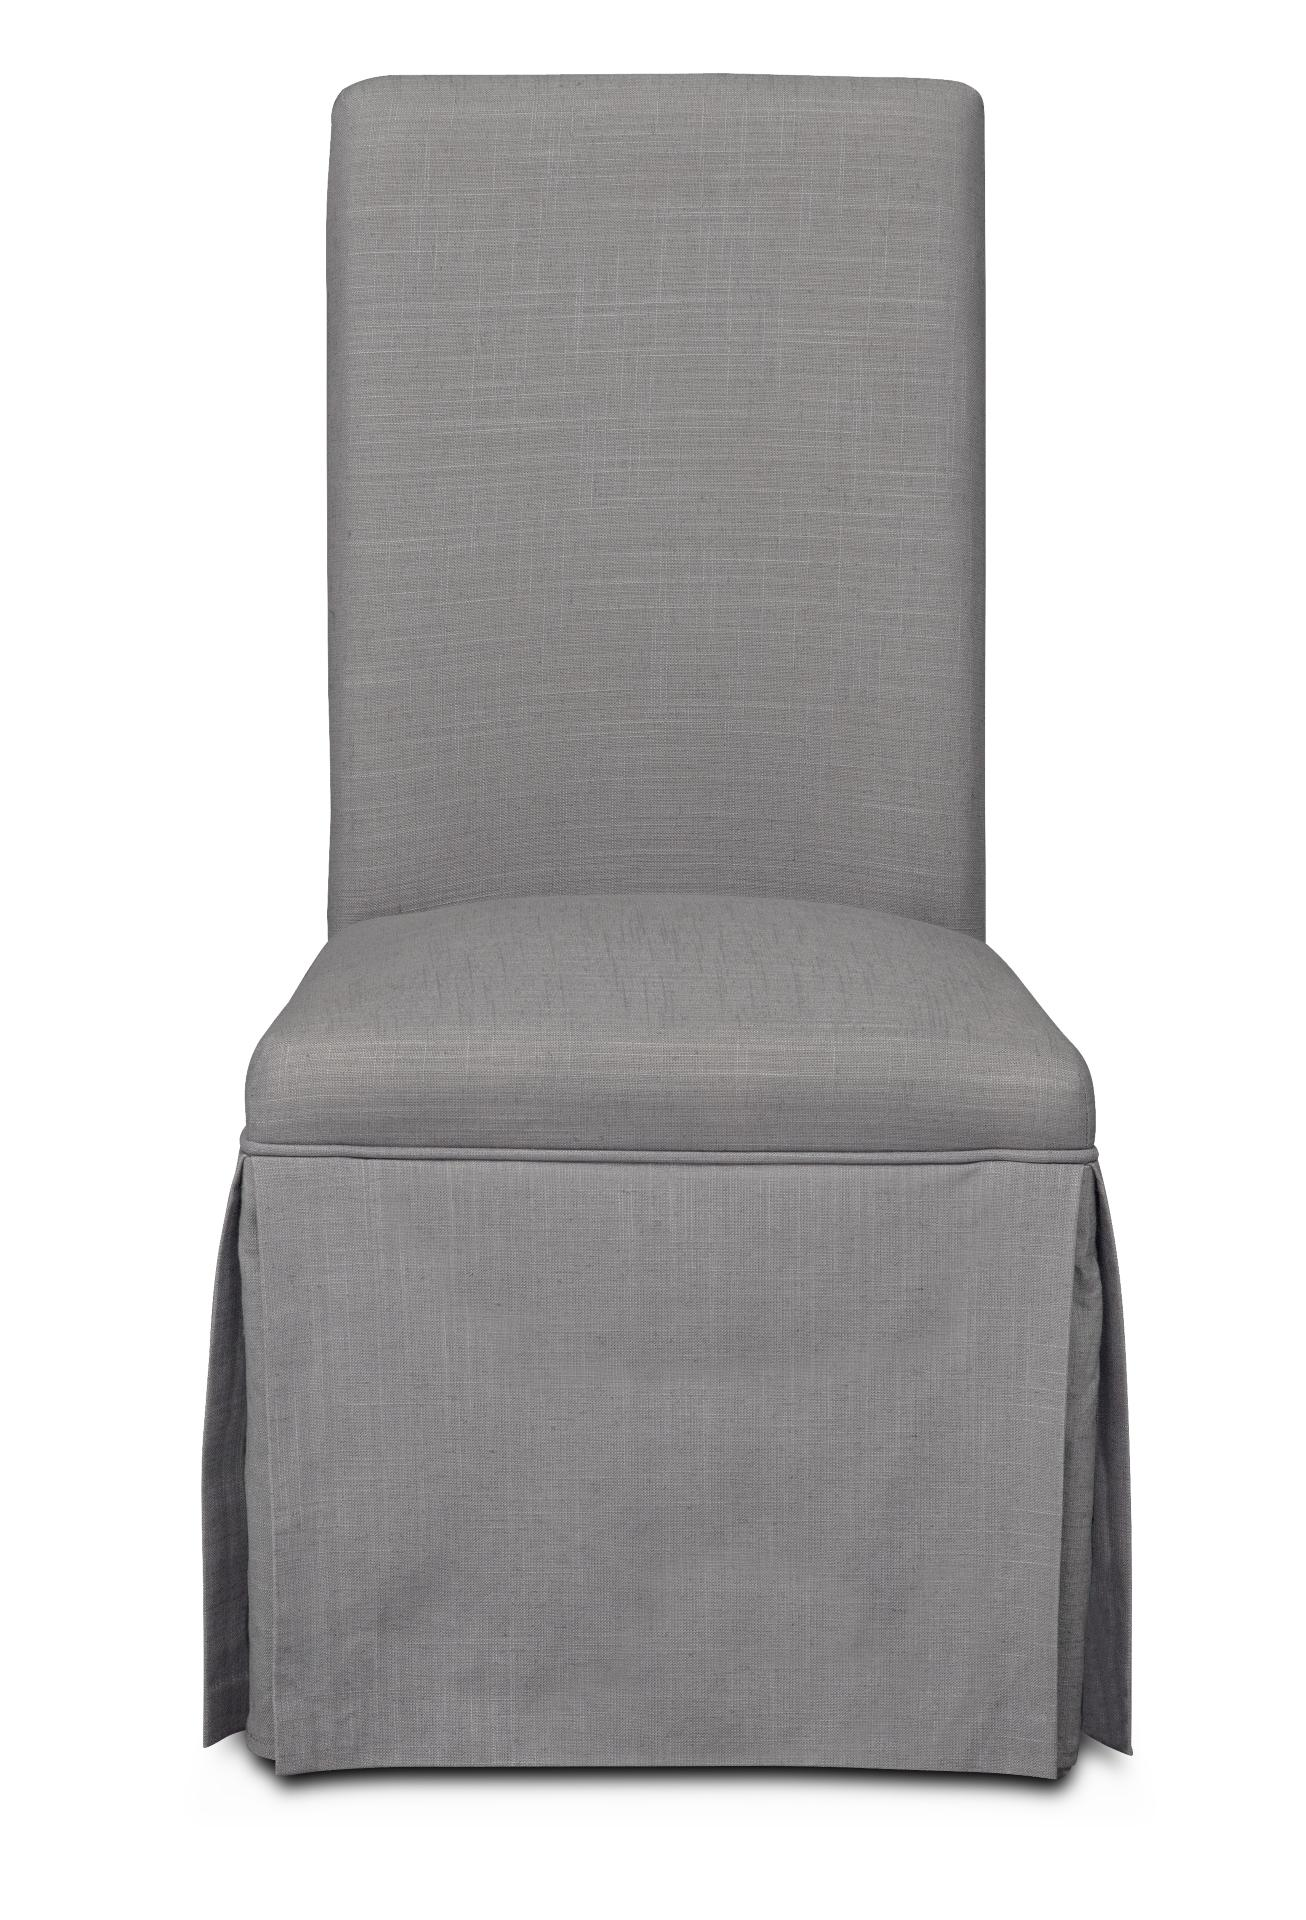 Patrice Side Chair   Gray